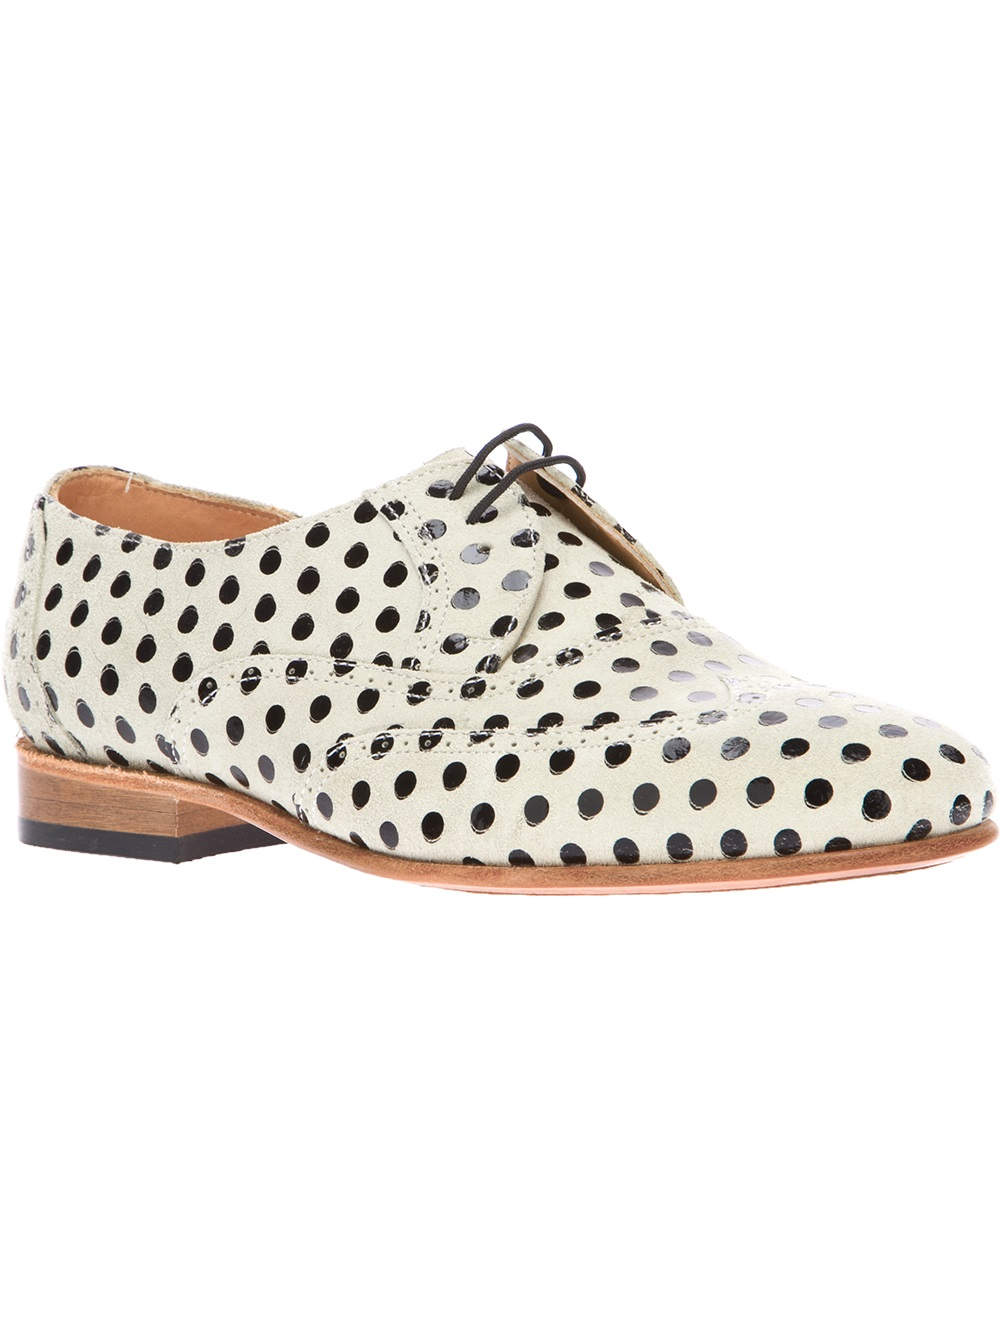 Dotted Oxfords from Dieppa Restrepo